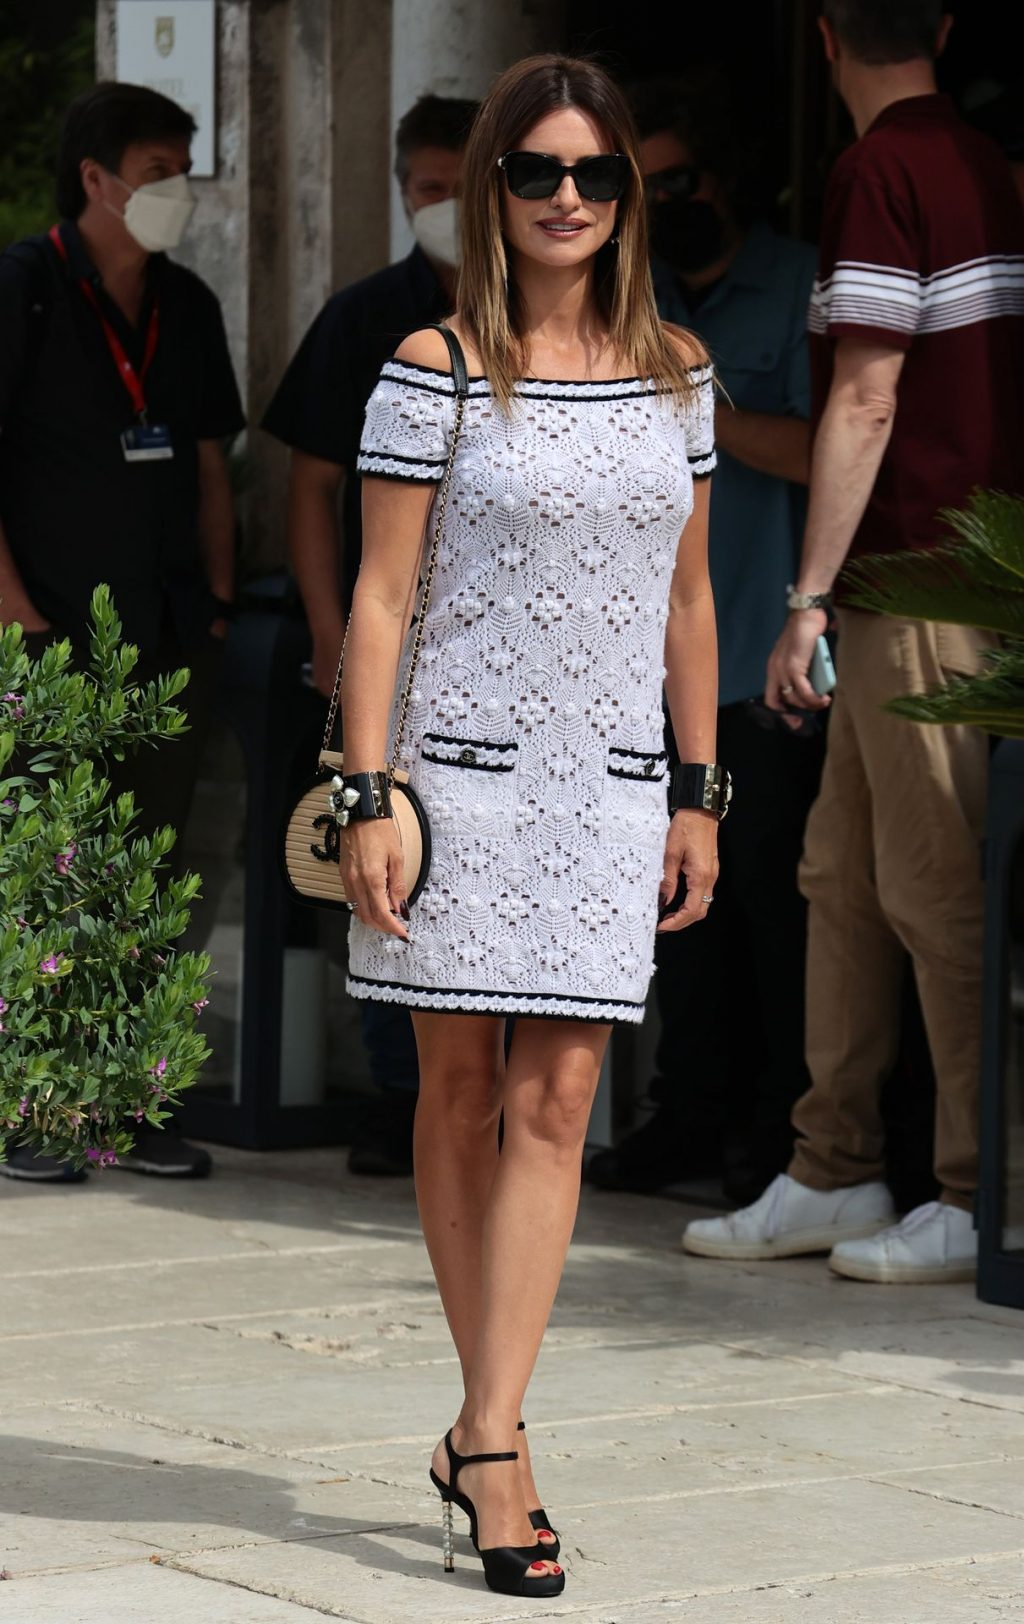 Penelope Cruz is Seen Arriving at the 78th Venice International Film Festival in Venice (137 Photos)